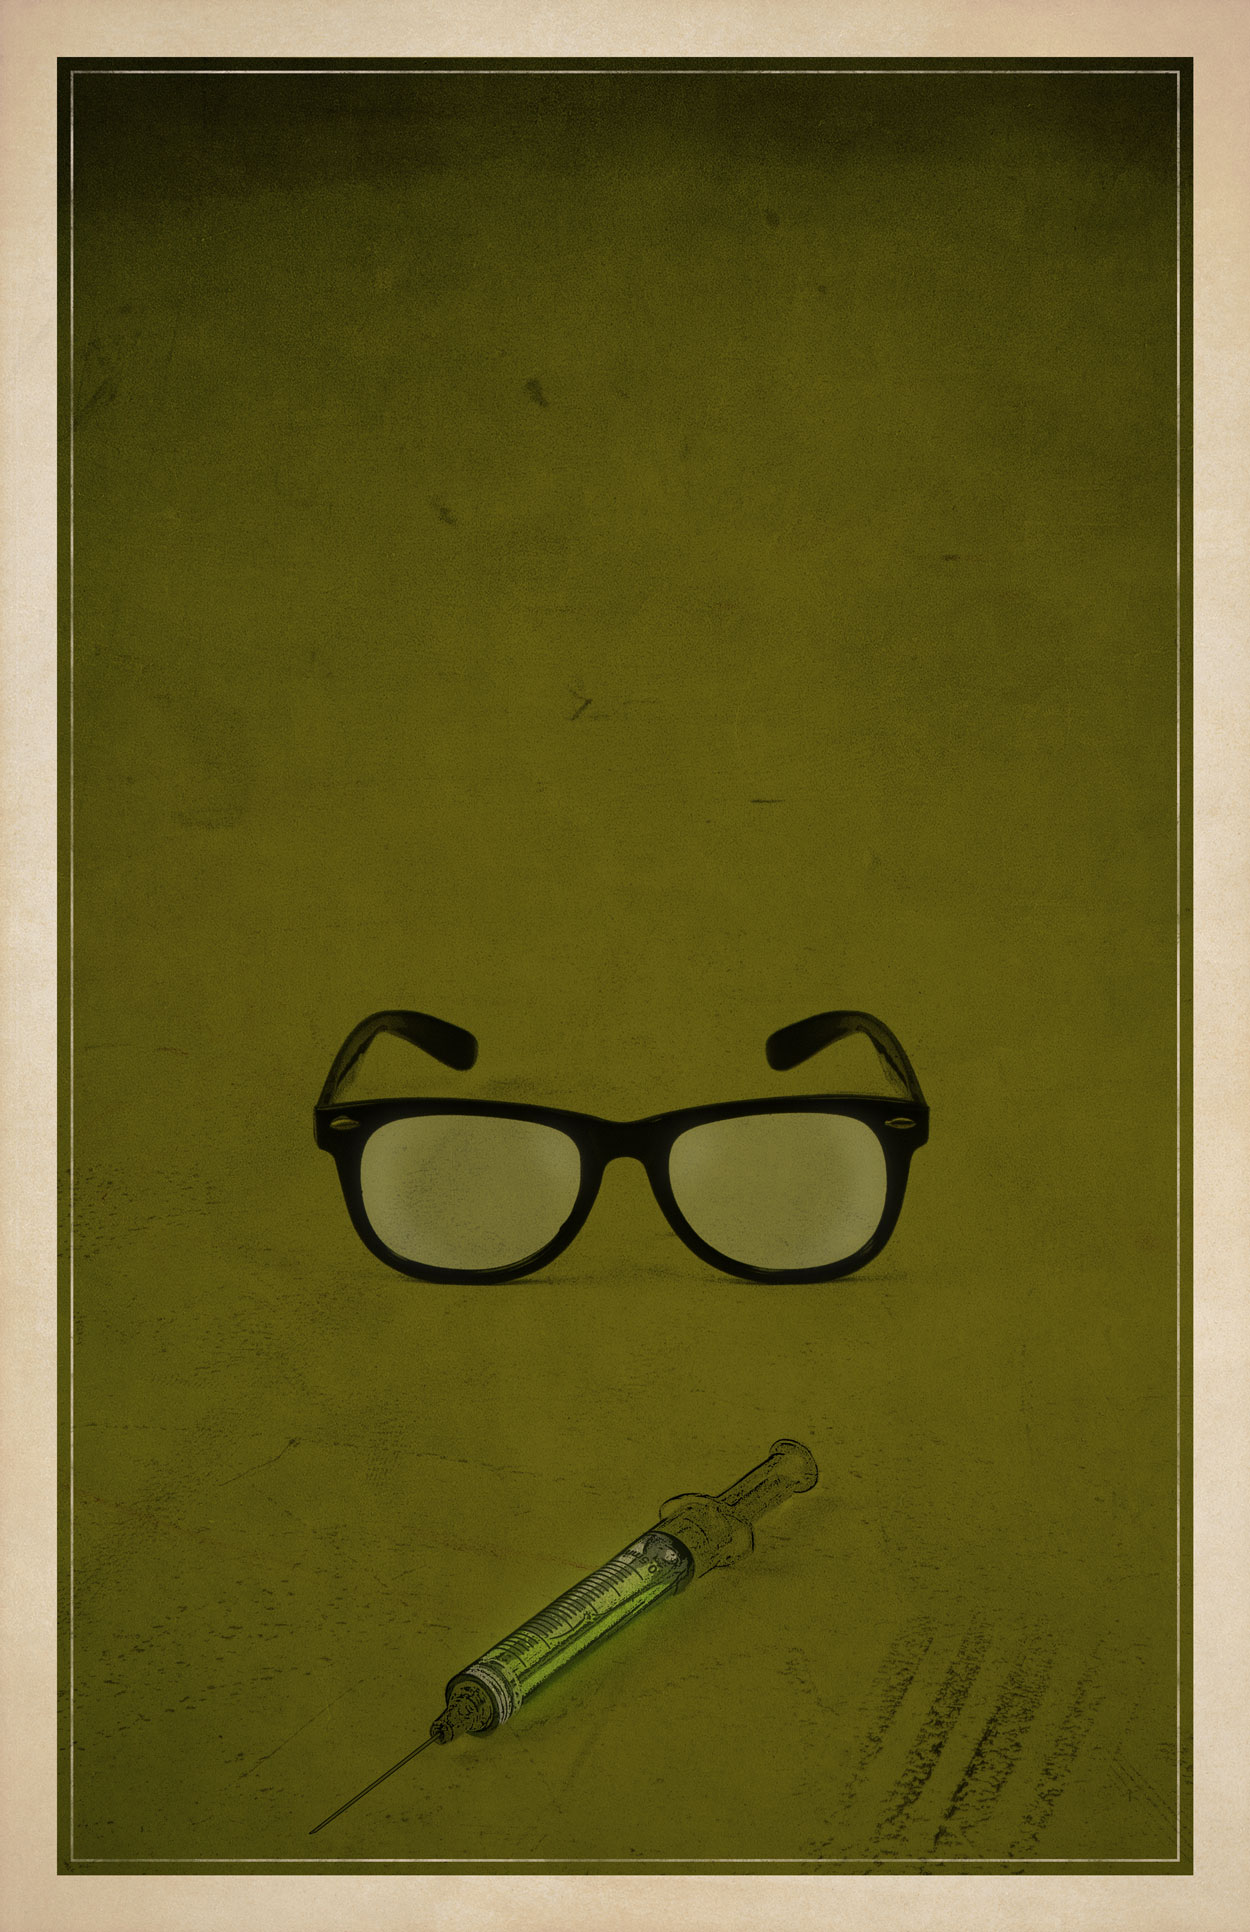 Re-Animator Minimalist Poster